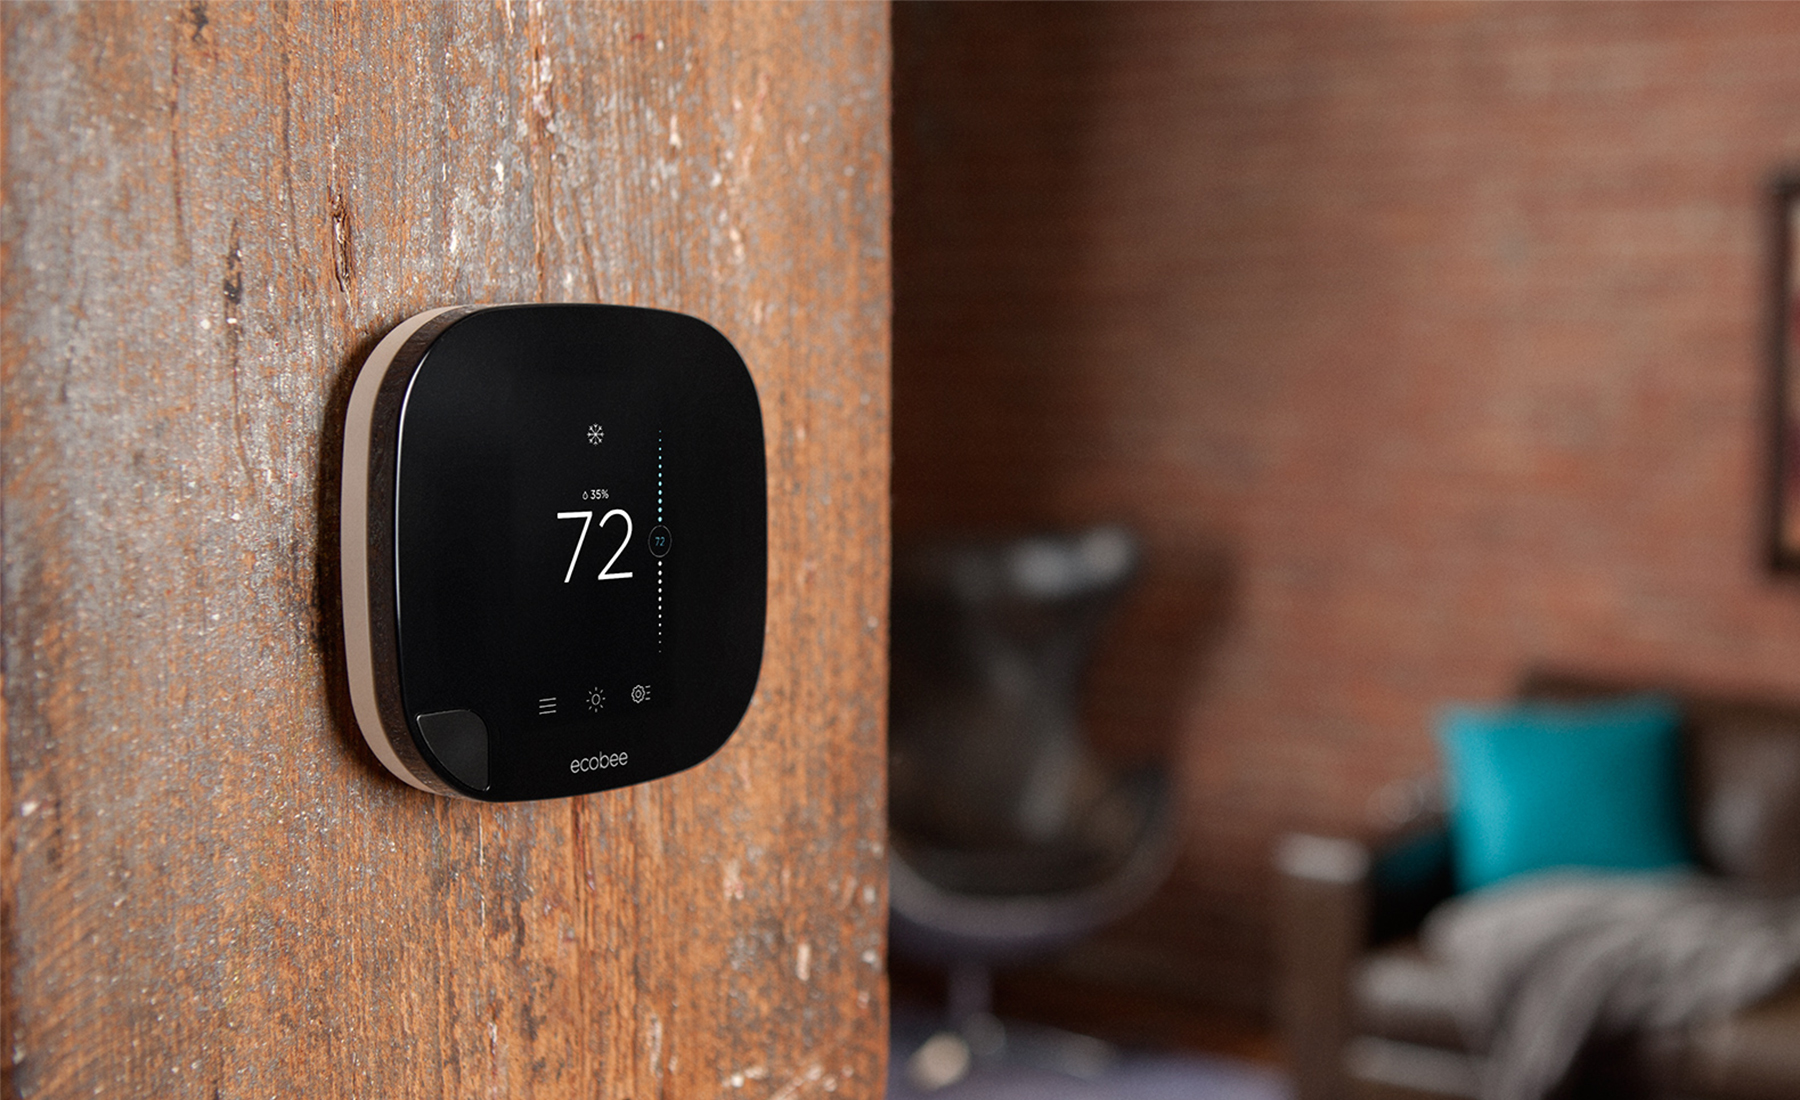 Ecobee3 smart home devices